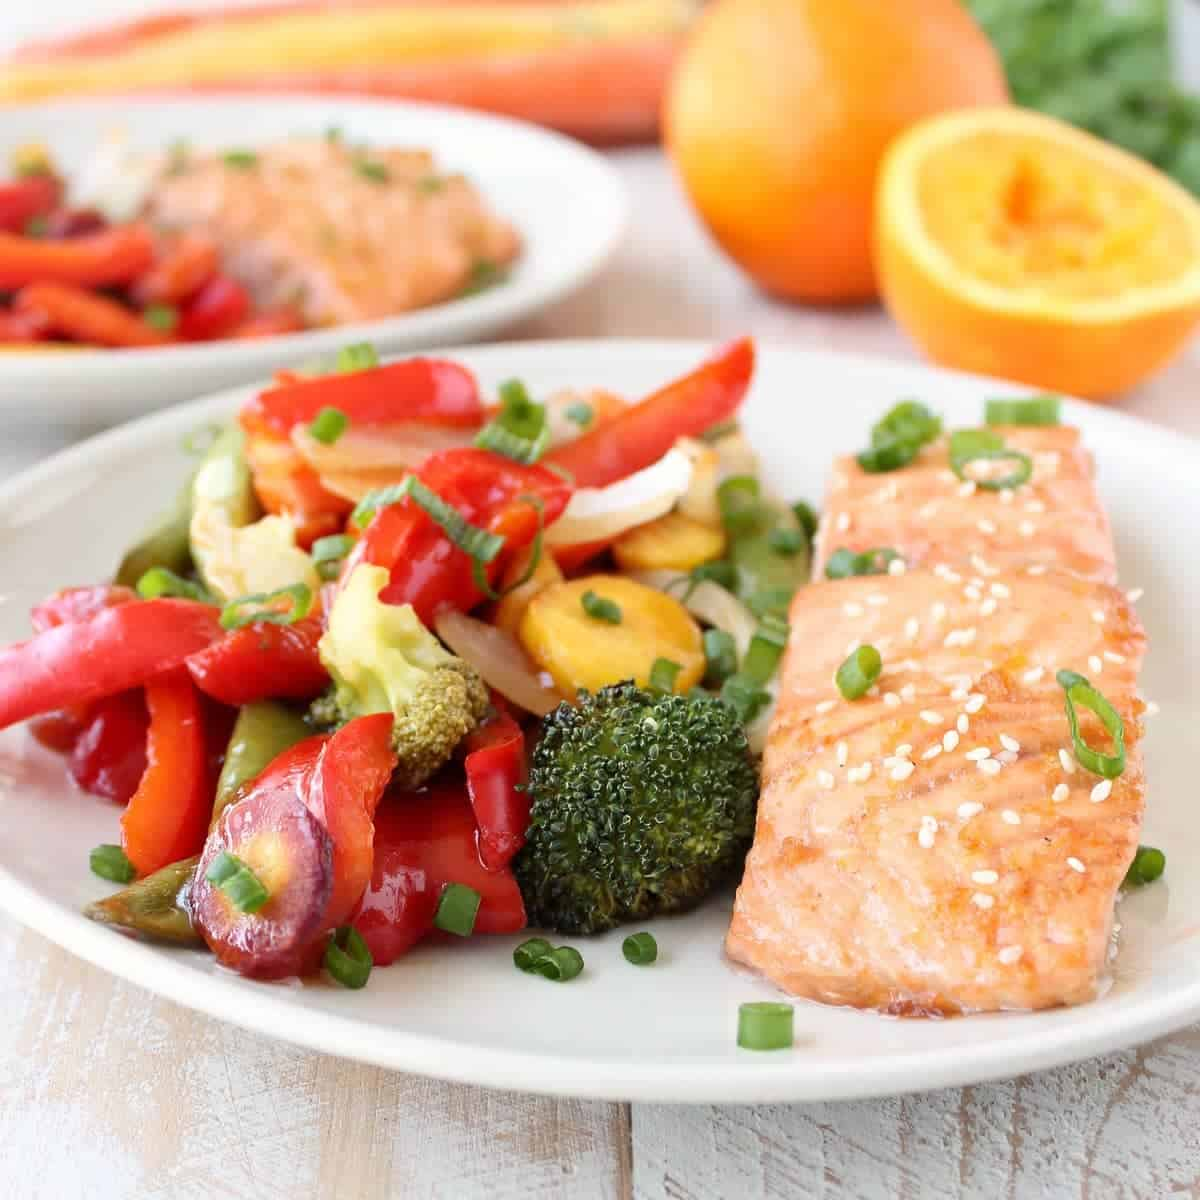 Cinnamon Chipotle Salmon · Chinese Orange Glazed Salmon Foil Dinner